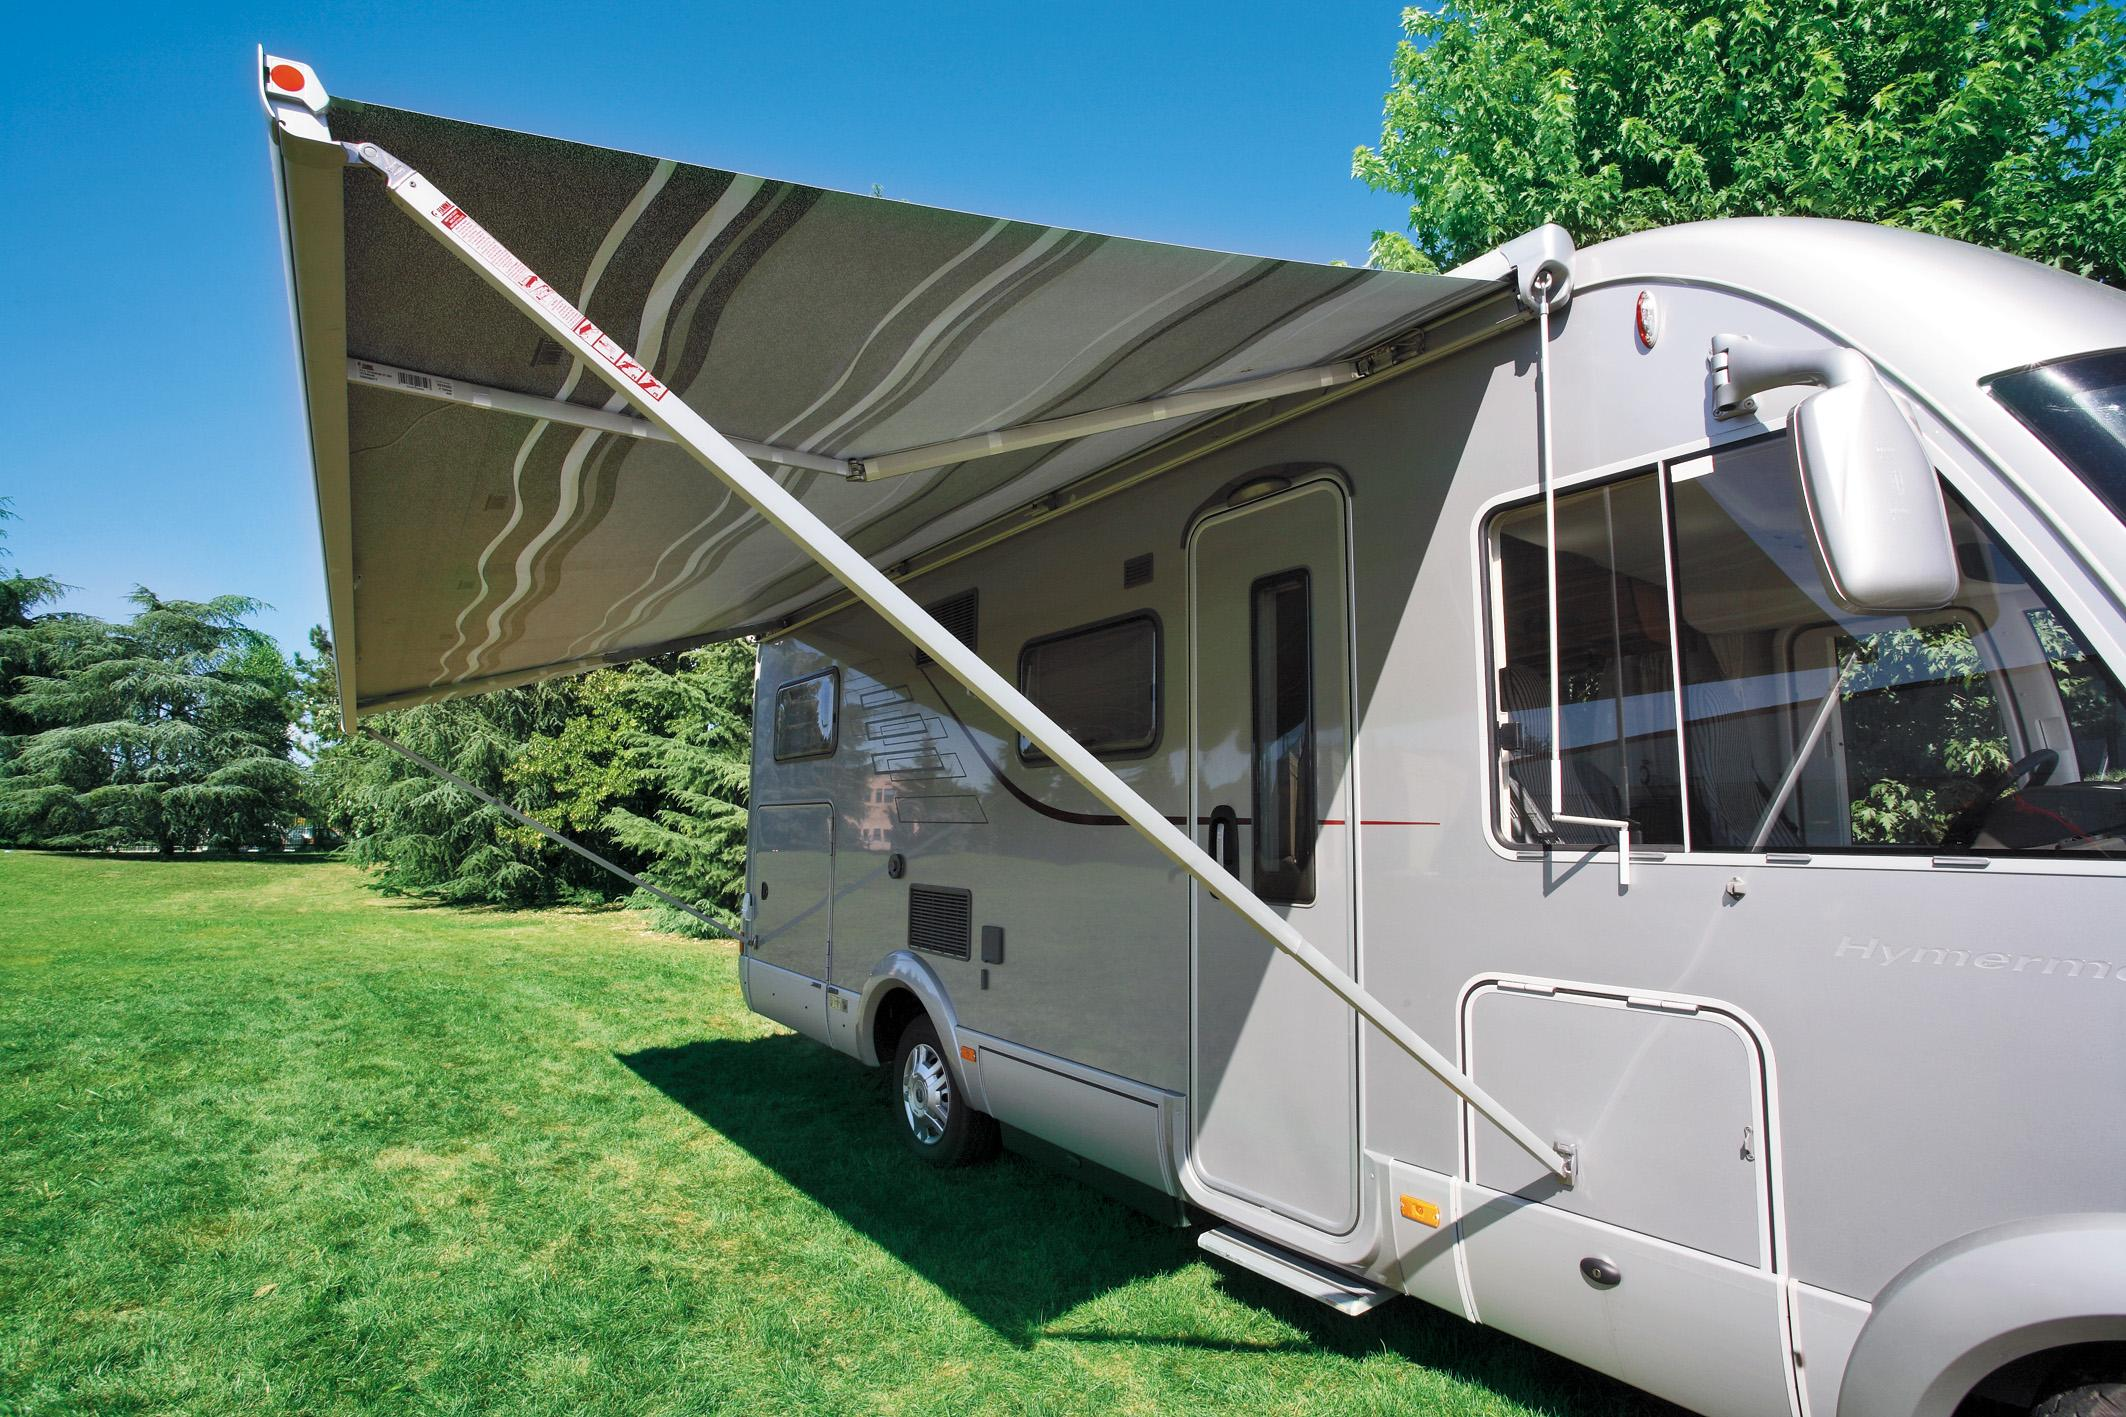 Camper Awning Accessories